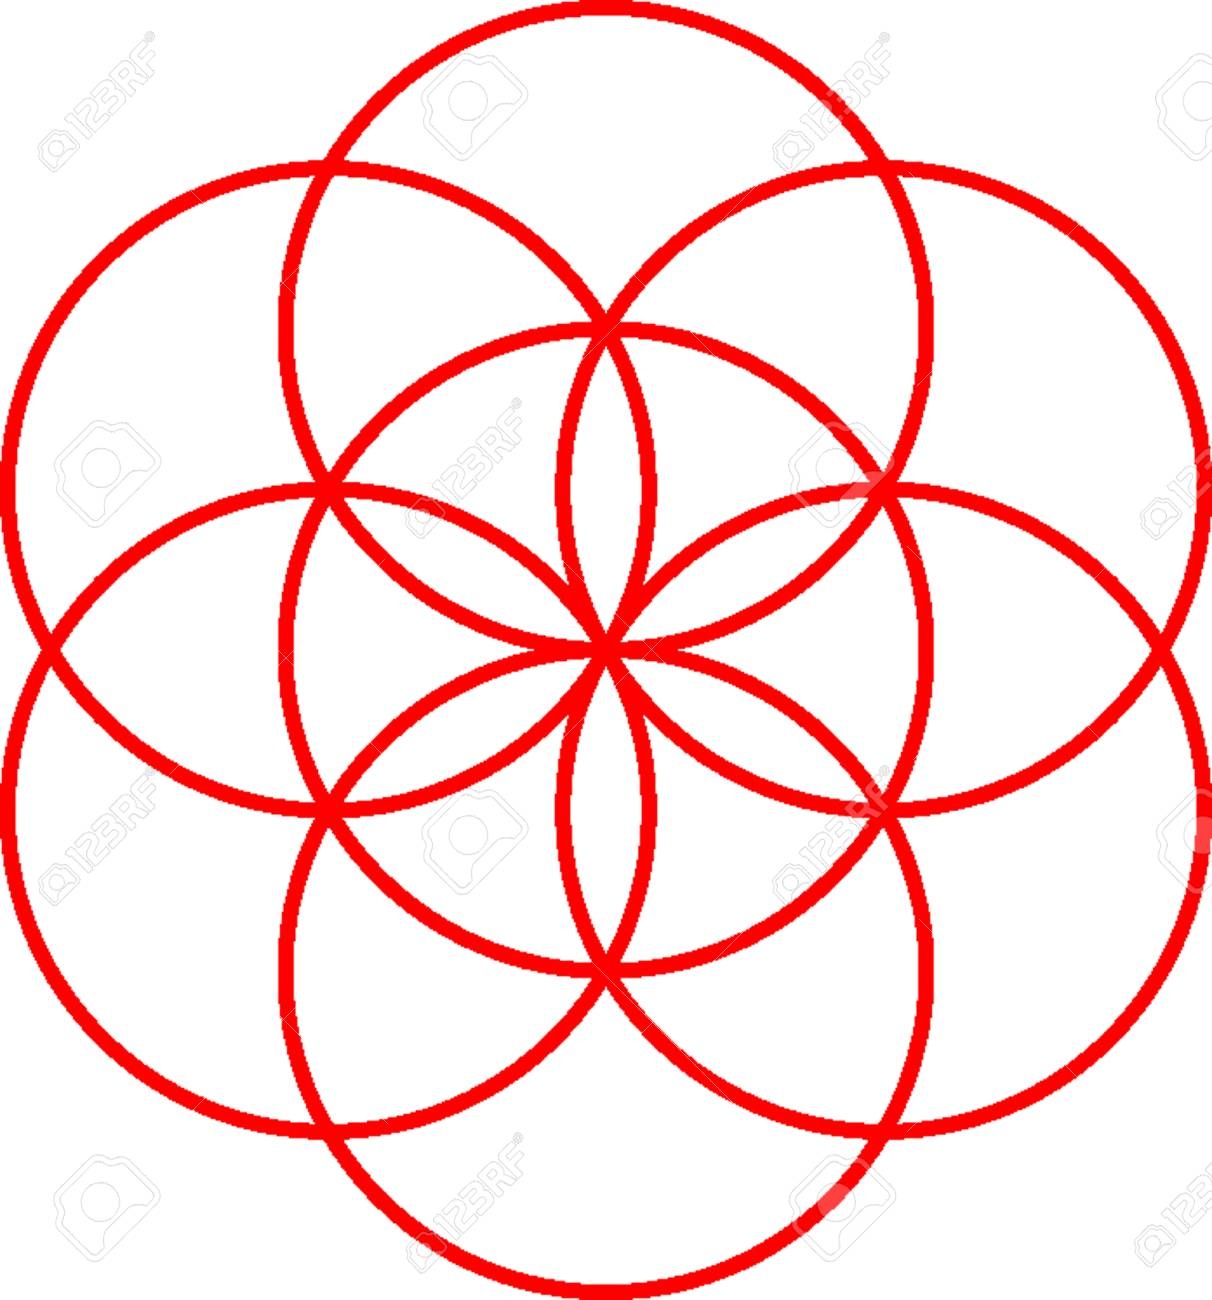 A seed of life symbol on white background